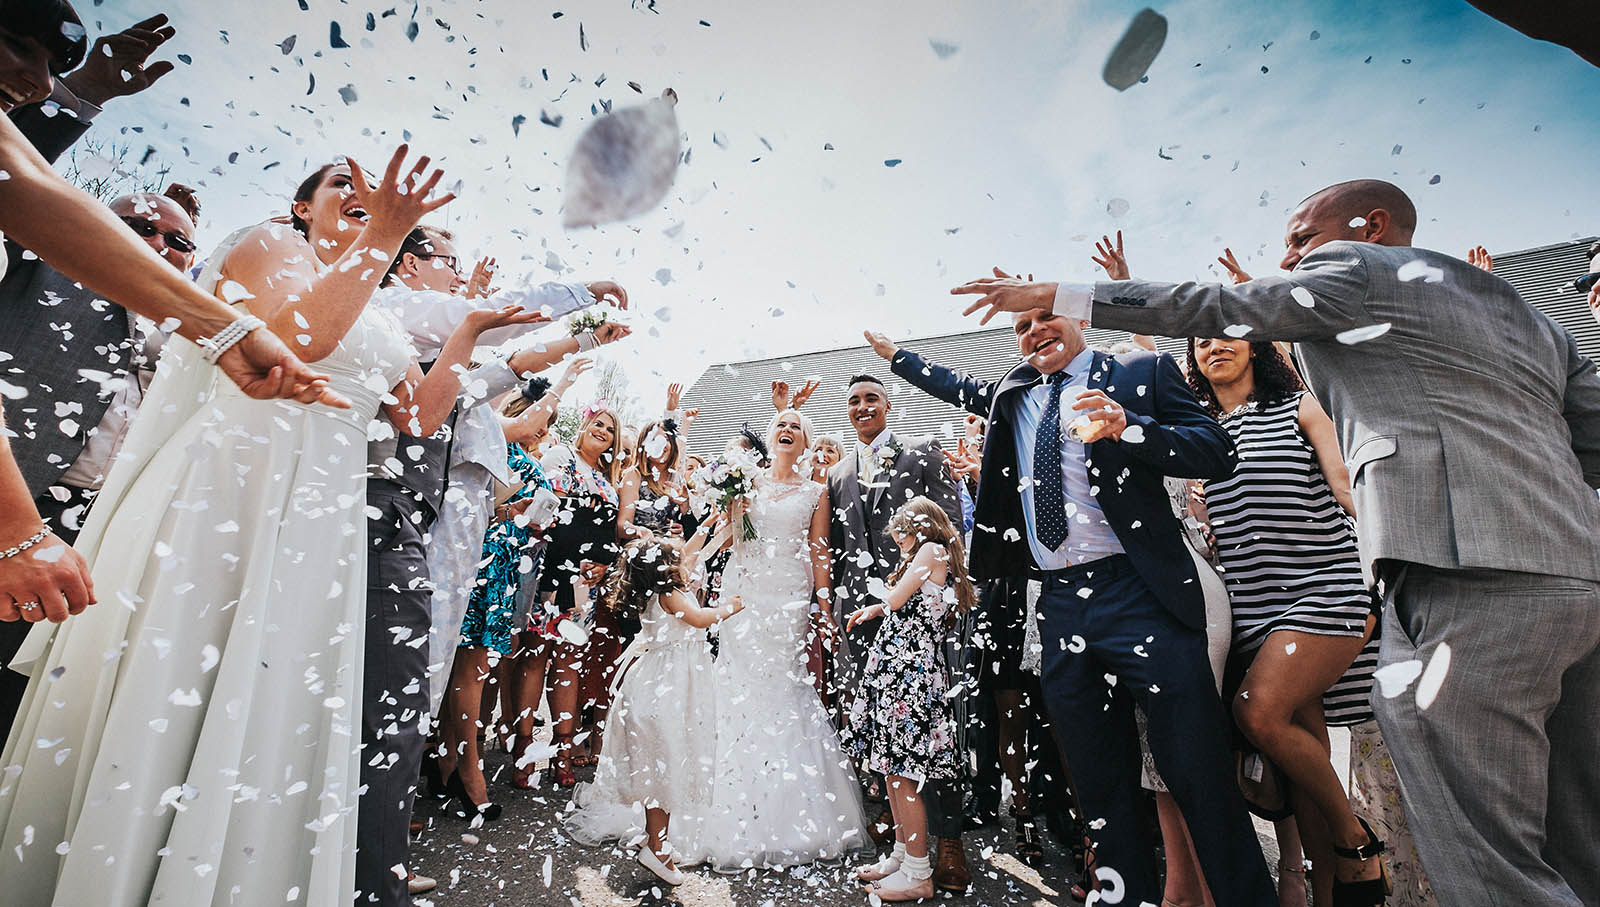 Newlyweds and confetti photography by Staffordshire wedding photographer bib & tucker